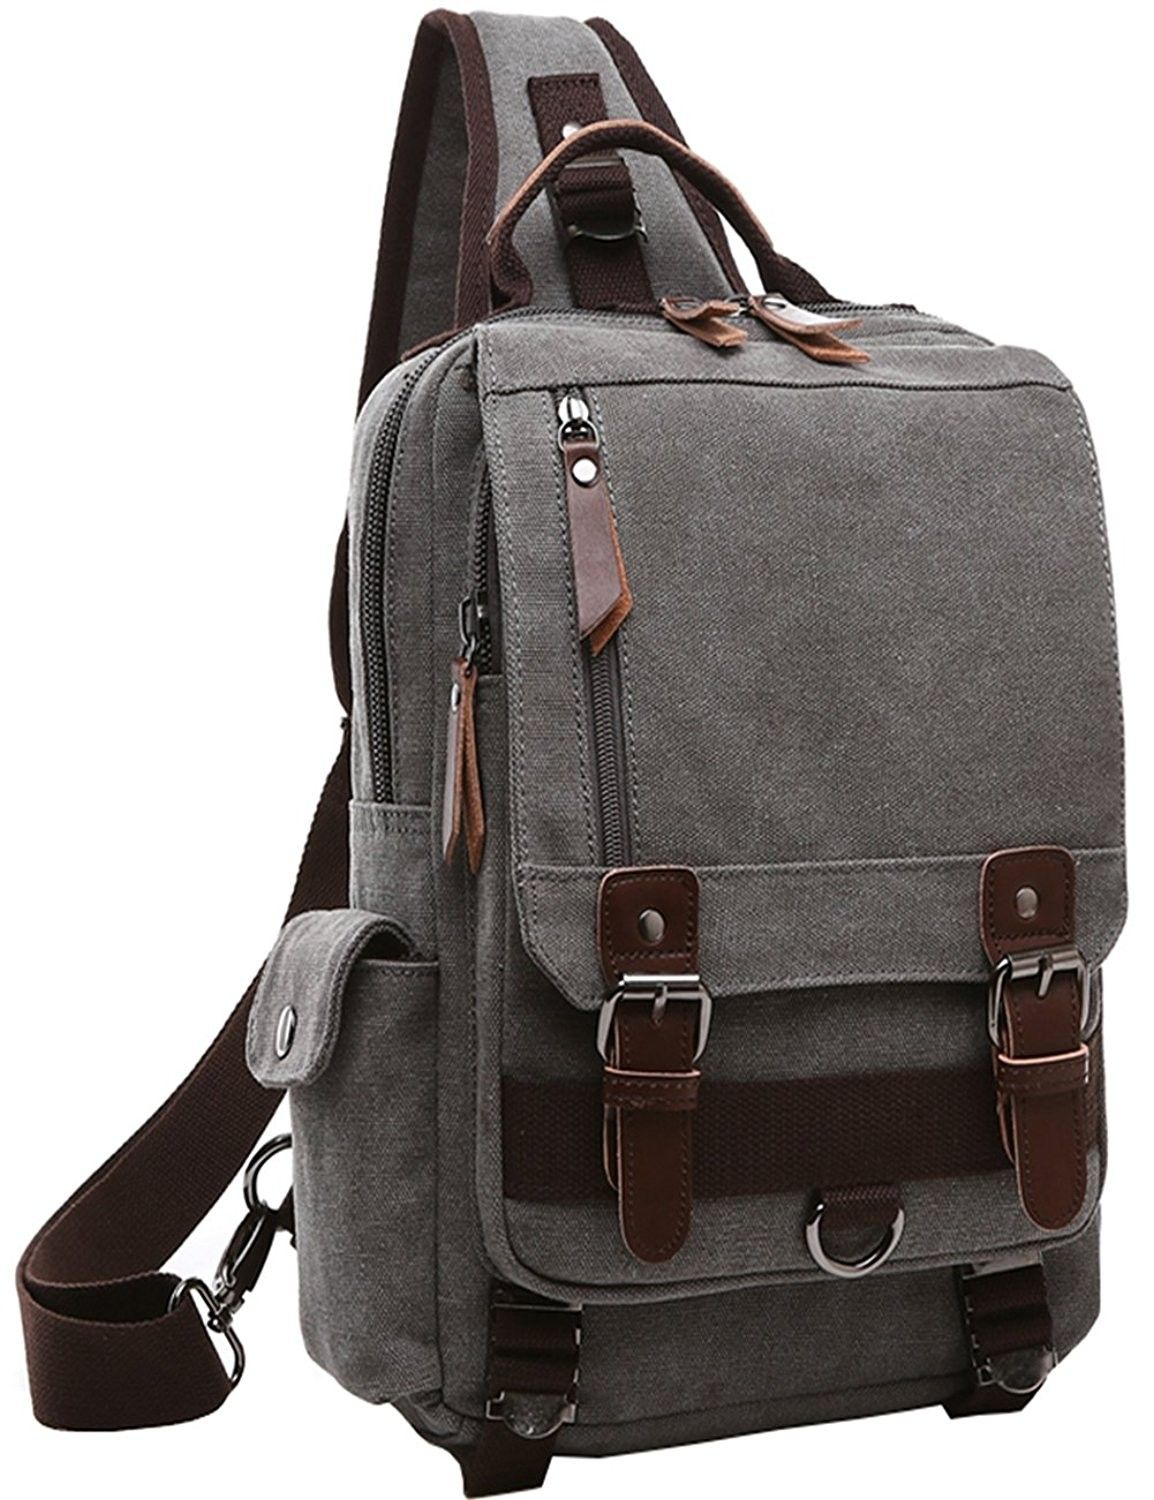 Canvas Messenger Bag for Men Laptop Sling Backpack Cross Body Shoulder Rucksack